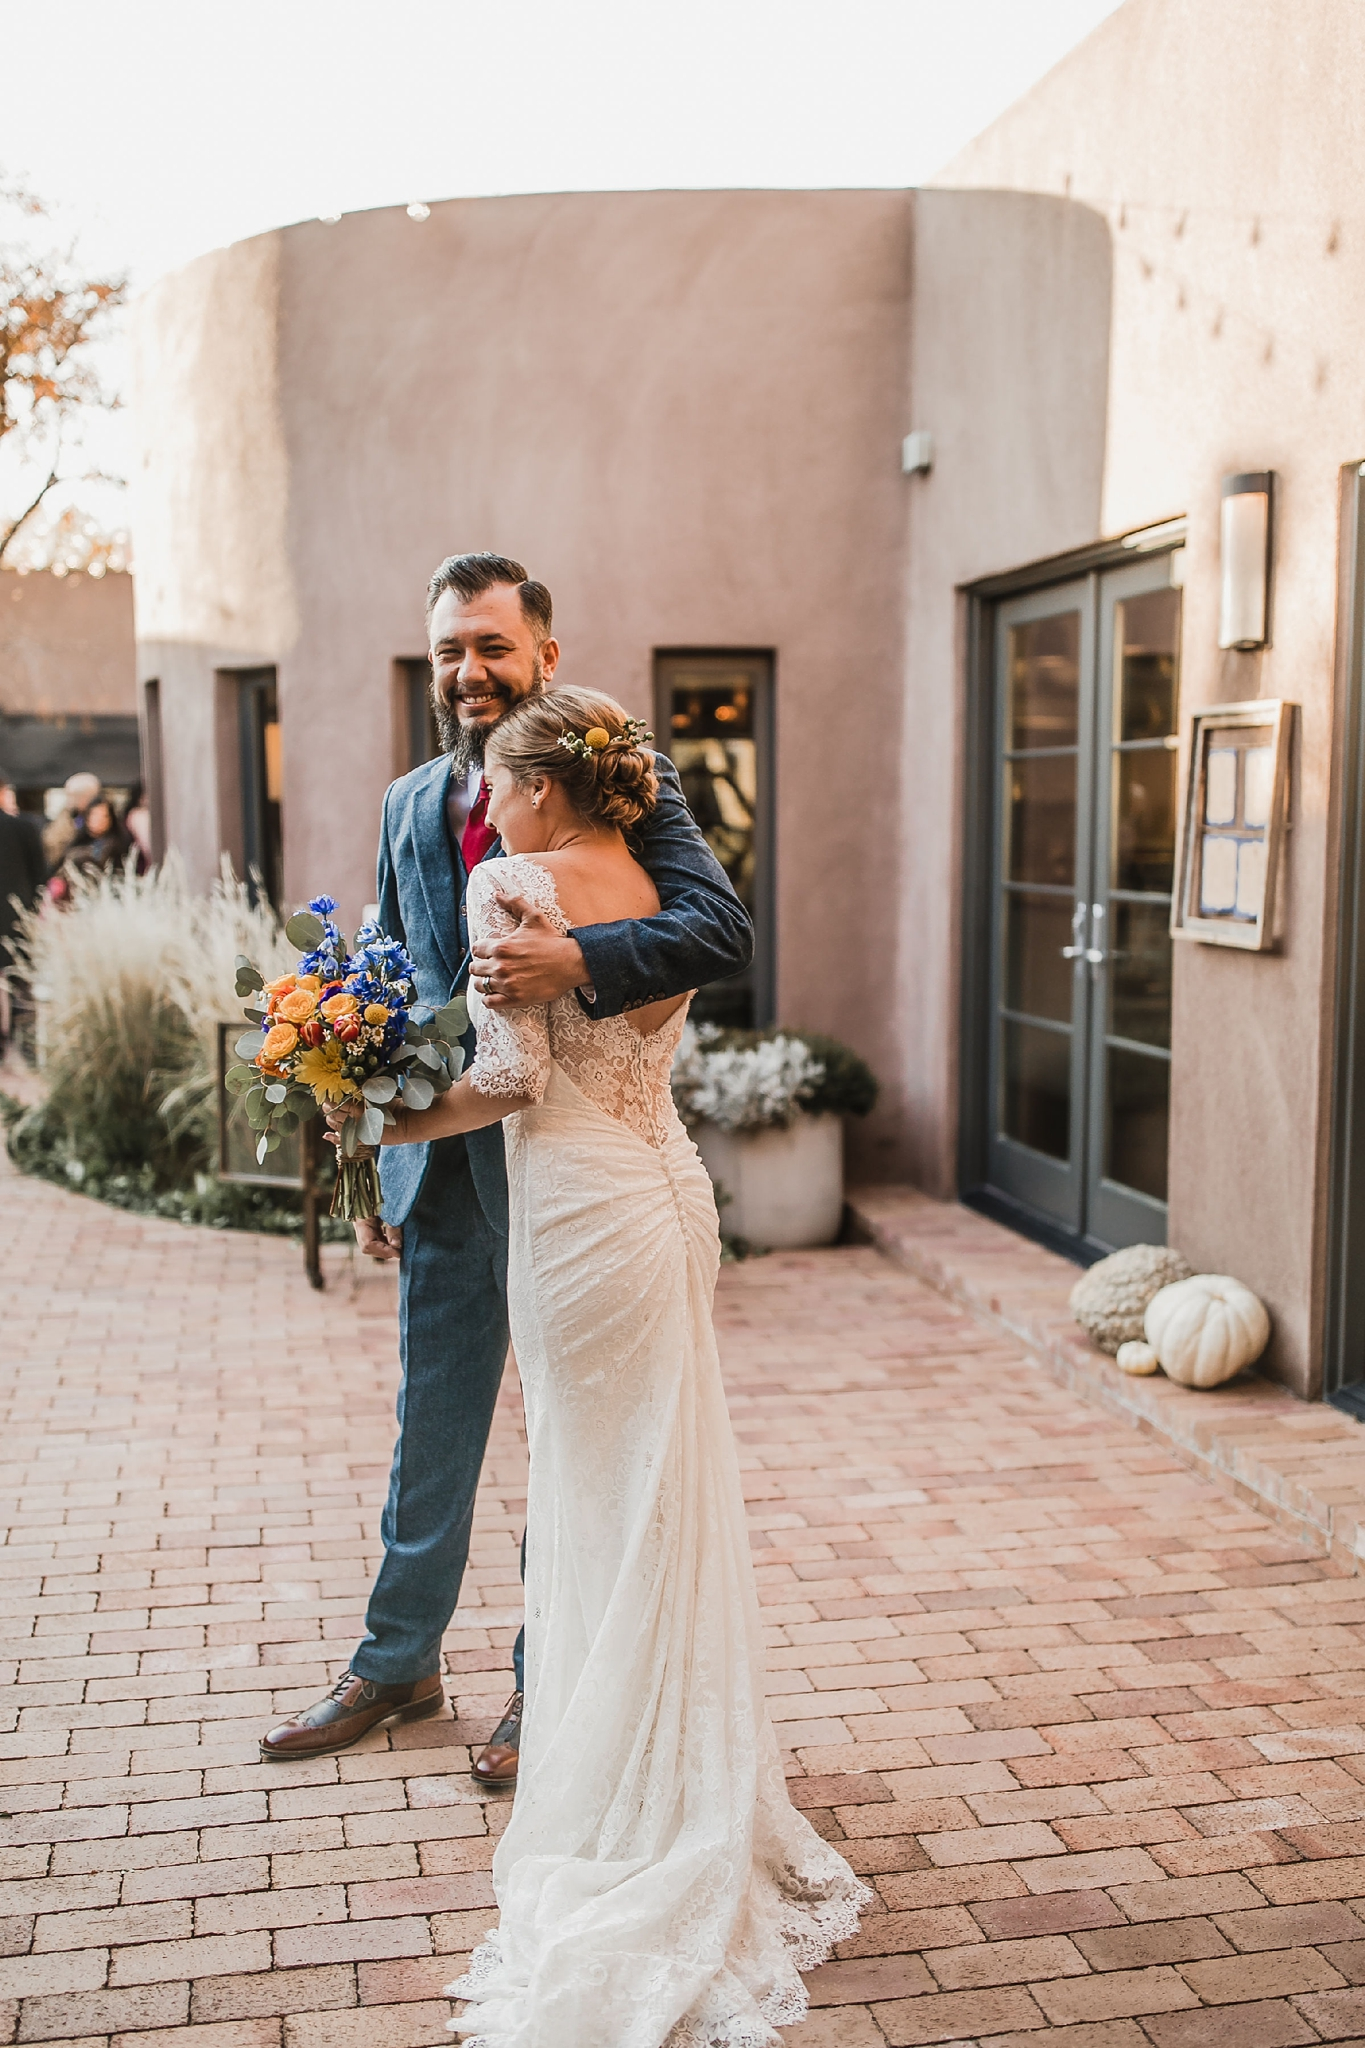 Alicia+lucia+photography+-+albuquerque+wedding+photographer+-+santa+fe+wedding+photography+-+new+mexico+wedding+photographer+-+albuquerque+wedding+-+sarabande+bed+breakfast+-+bed+and+breakfast+wedding_0063.jpg